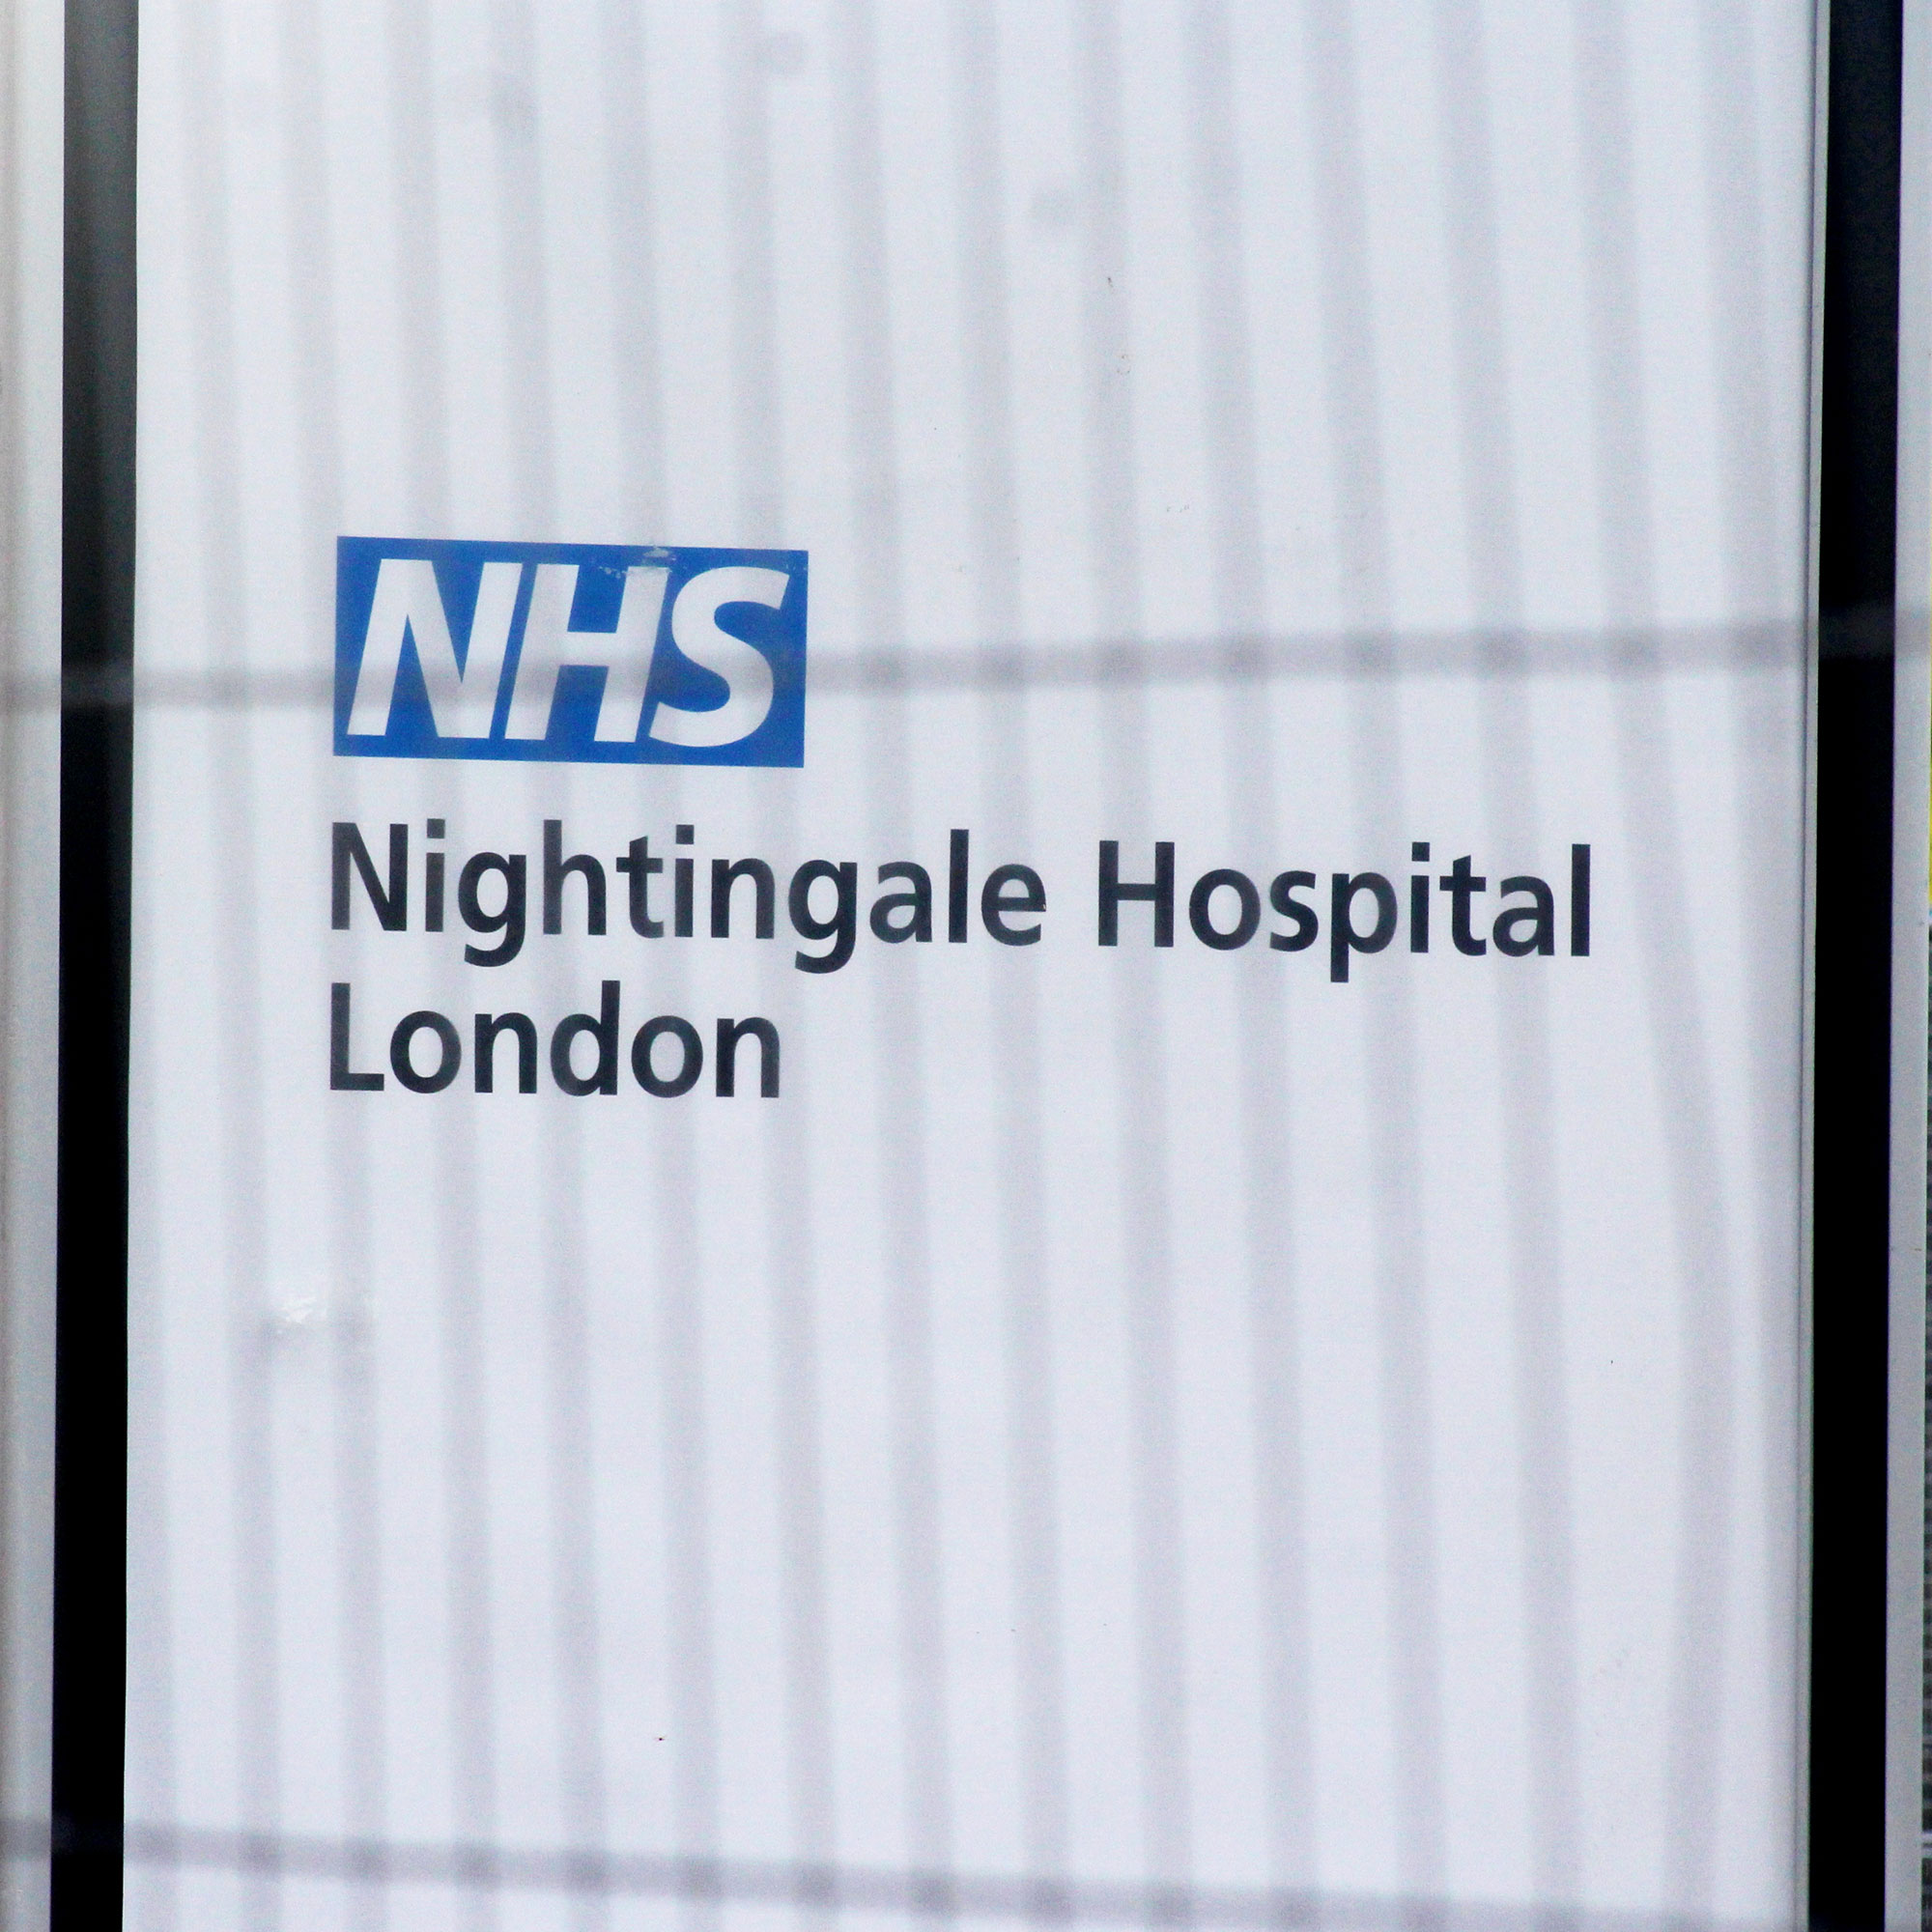 NHS Nightingale Hospital